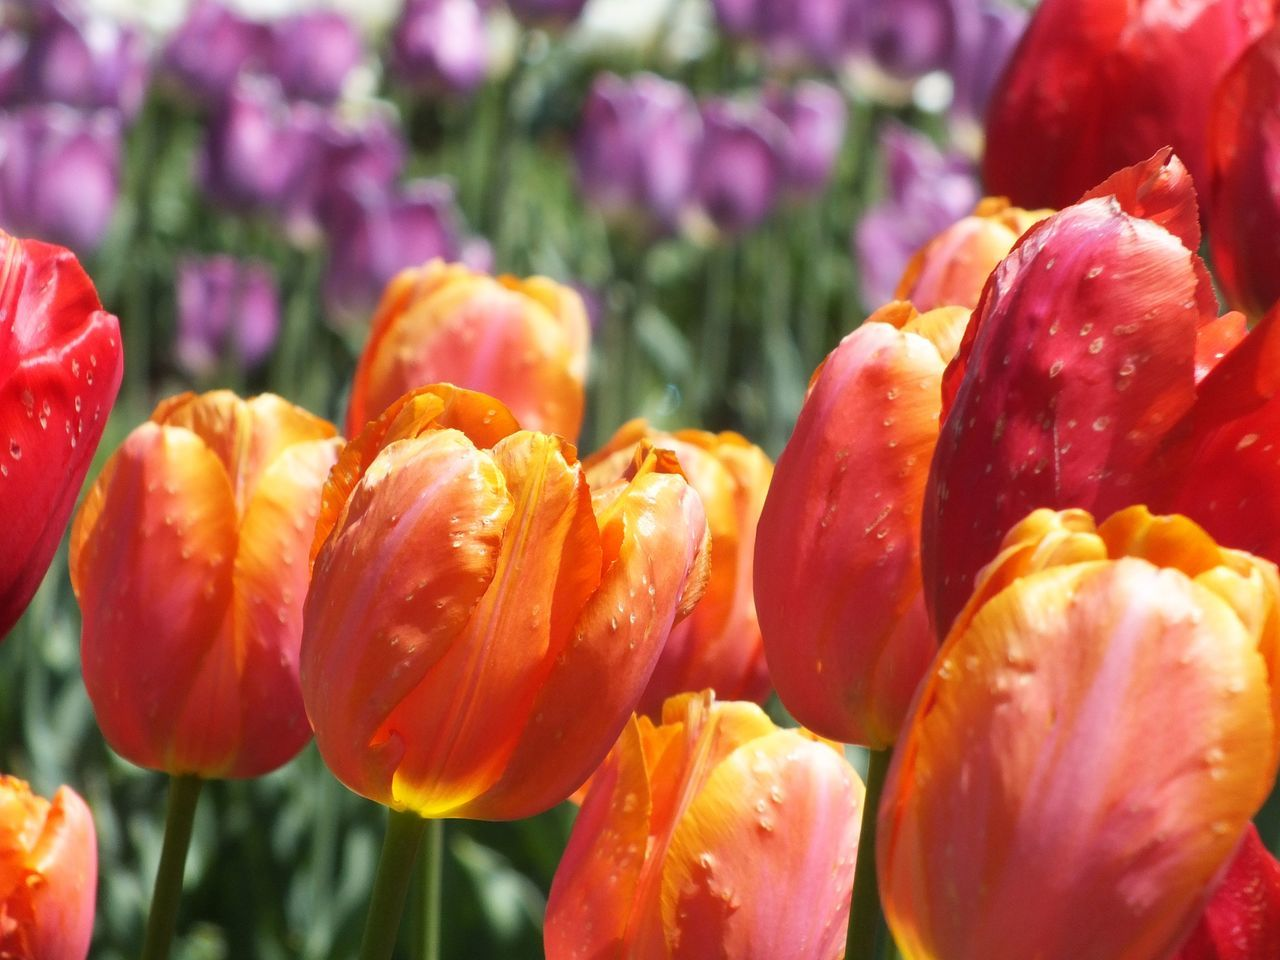 Beauty Of Flowers Colorful Flowers Colorful Tulips Floral Floral Perfection Floral Photography Floralphotography Flower Collection Flowers Flowers, Nature And Beauty Flowers,Plants & Garden Nature Nature Photography Orange Orange Flower Orange Tulips Purple Tulips Spring Spring Flowers Springtime Tulip Fields Tulip Garden Tulips Colour Of Life Tulips In The Springtime